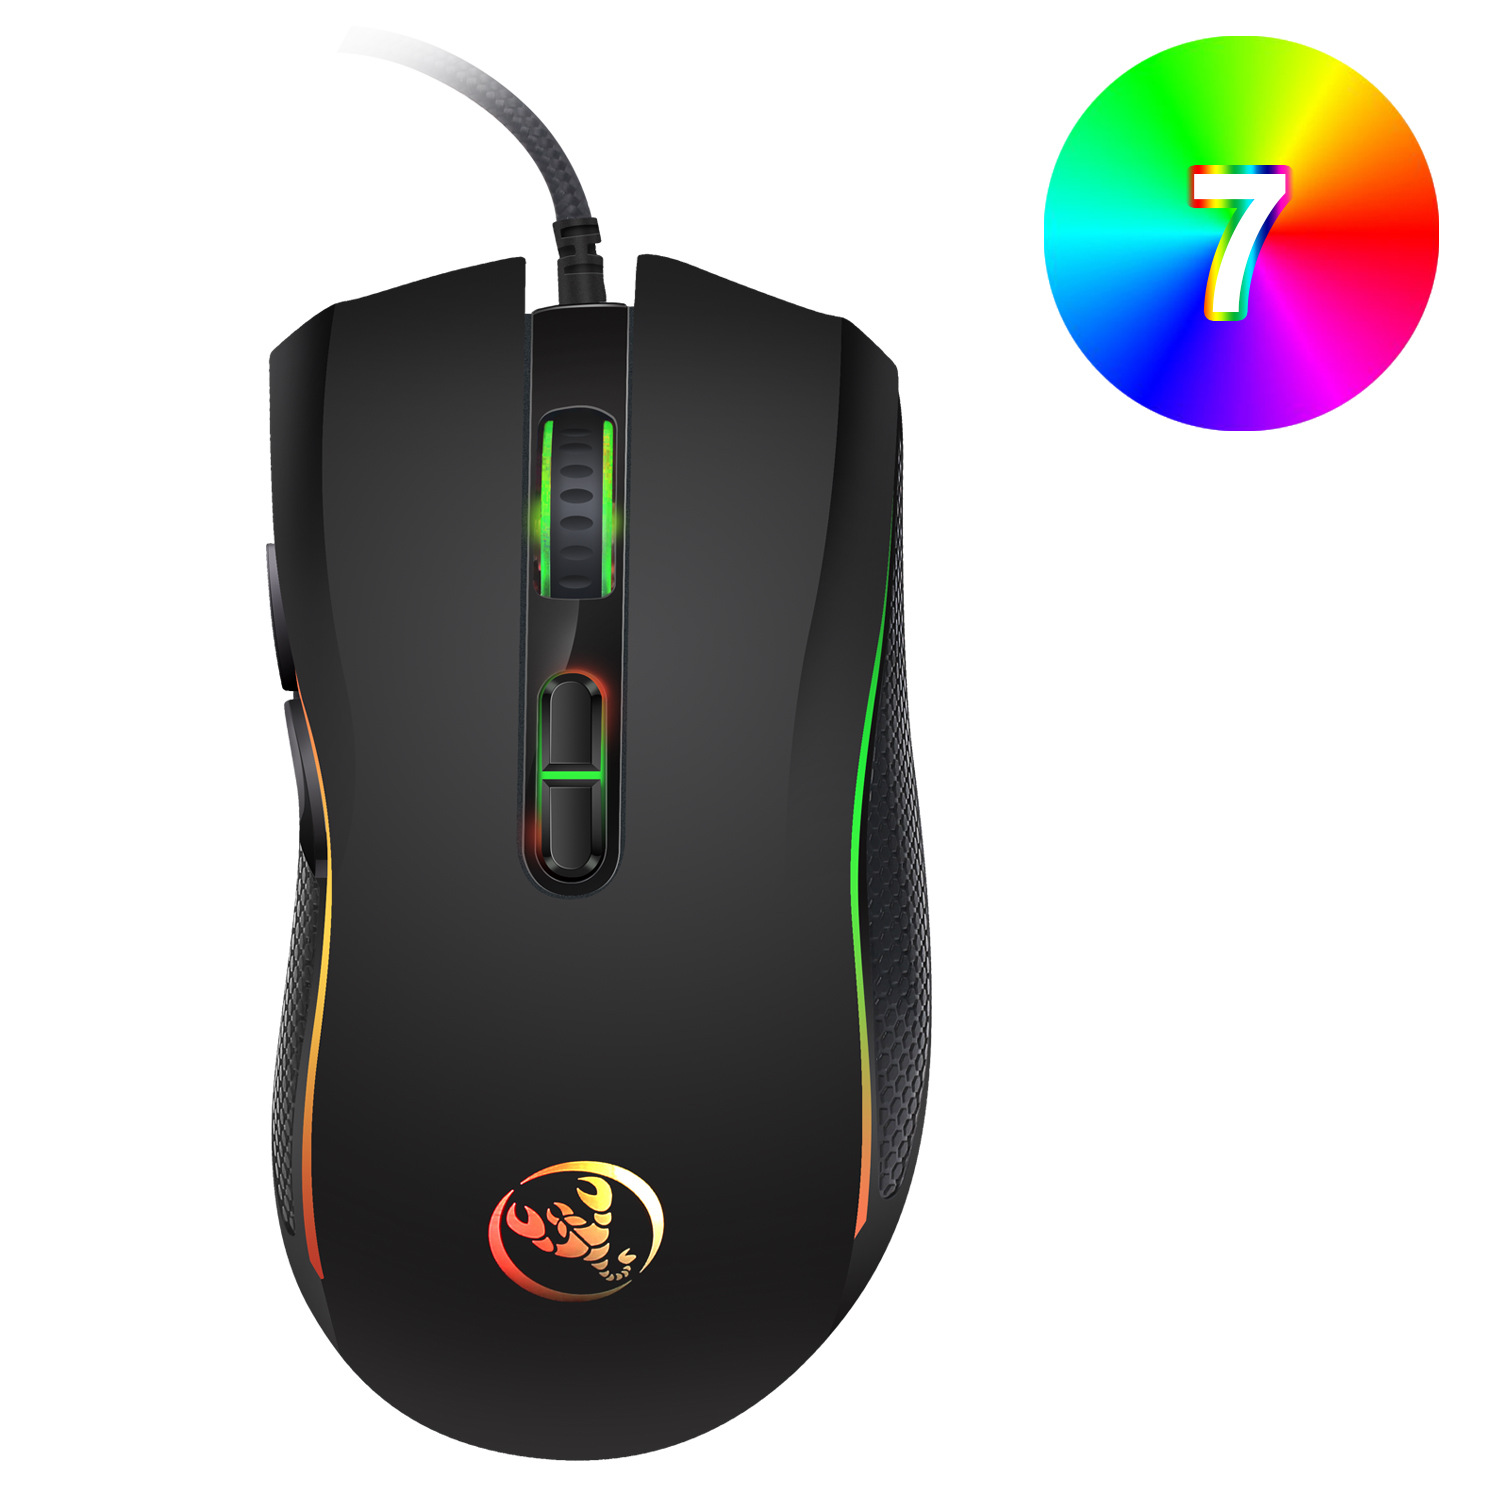 Image 2 - Hongsund brand High end optical professional gaming mouse with 7 